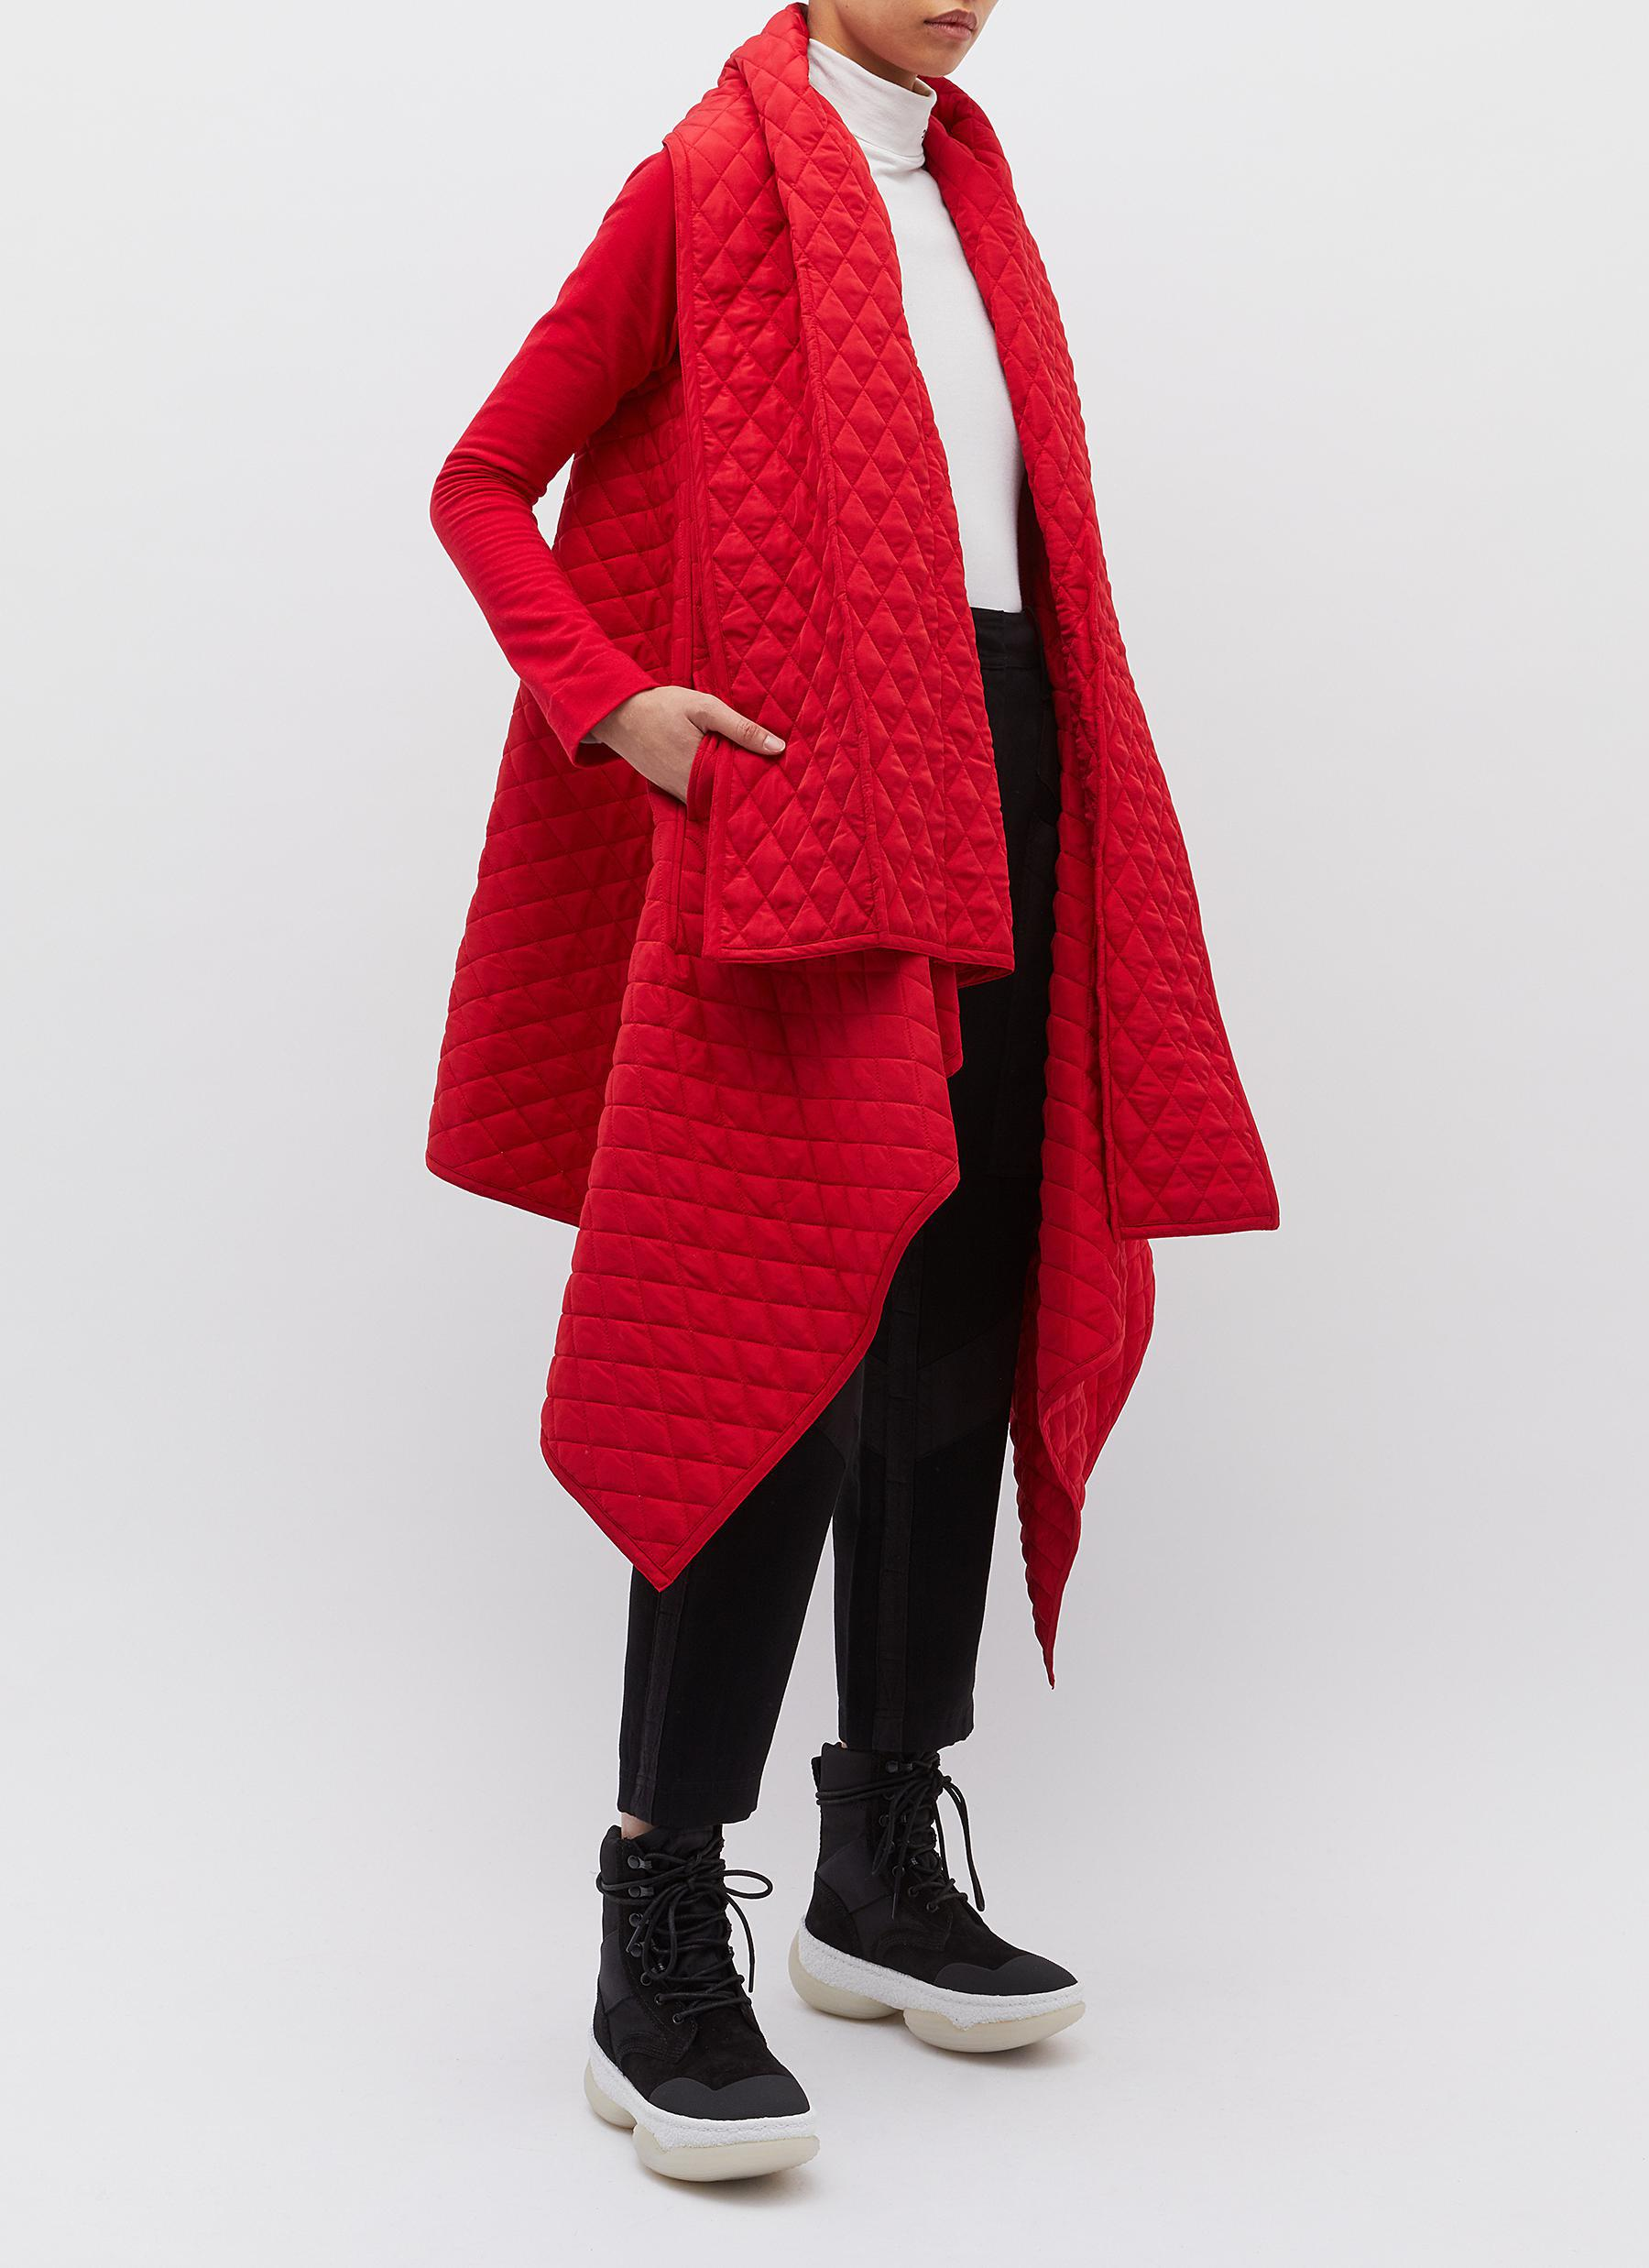 Norma Kamali - Red Belted Drape Quilted Blanket Coat - Lyst. View fullscreen c3a8c0f4e